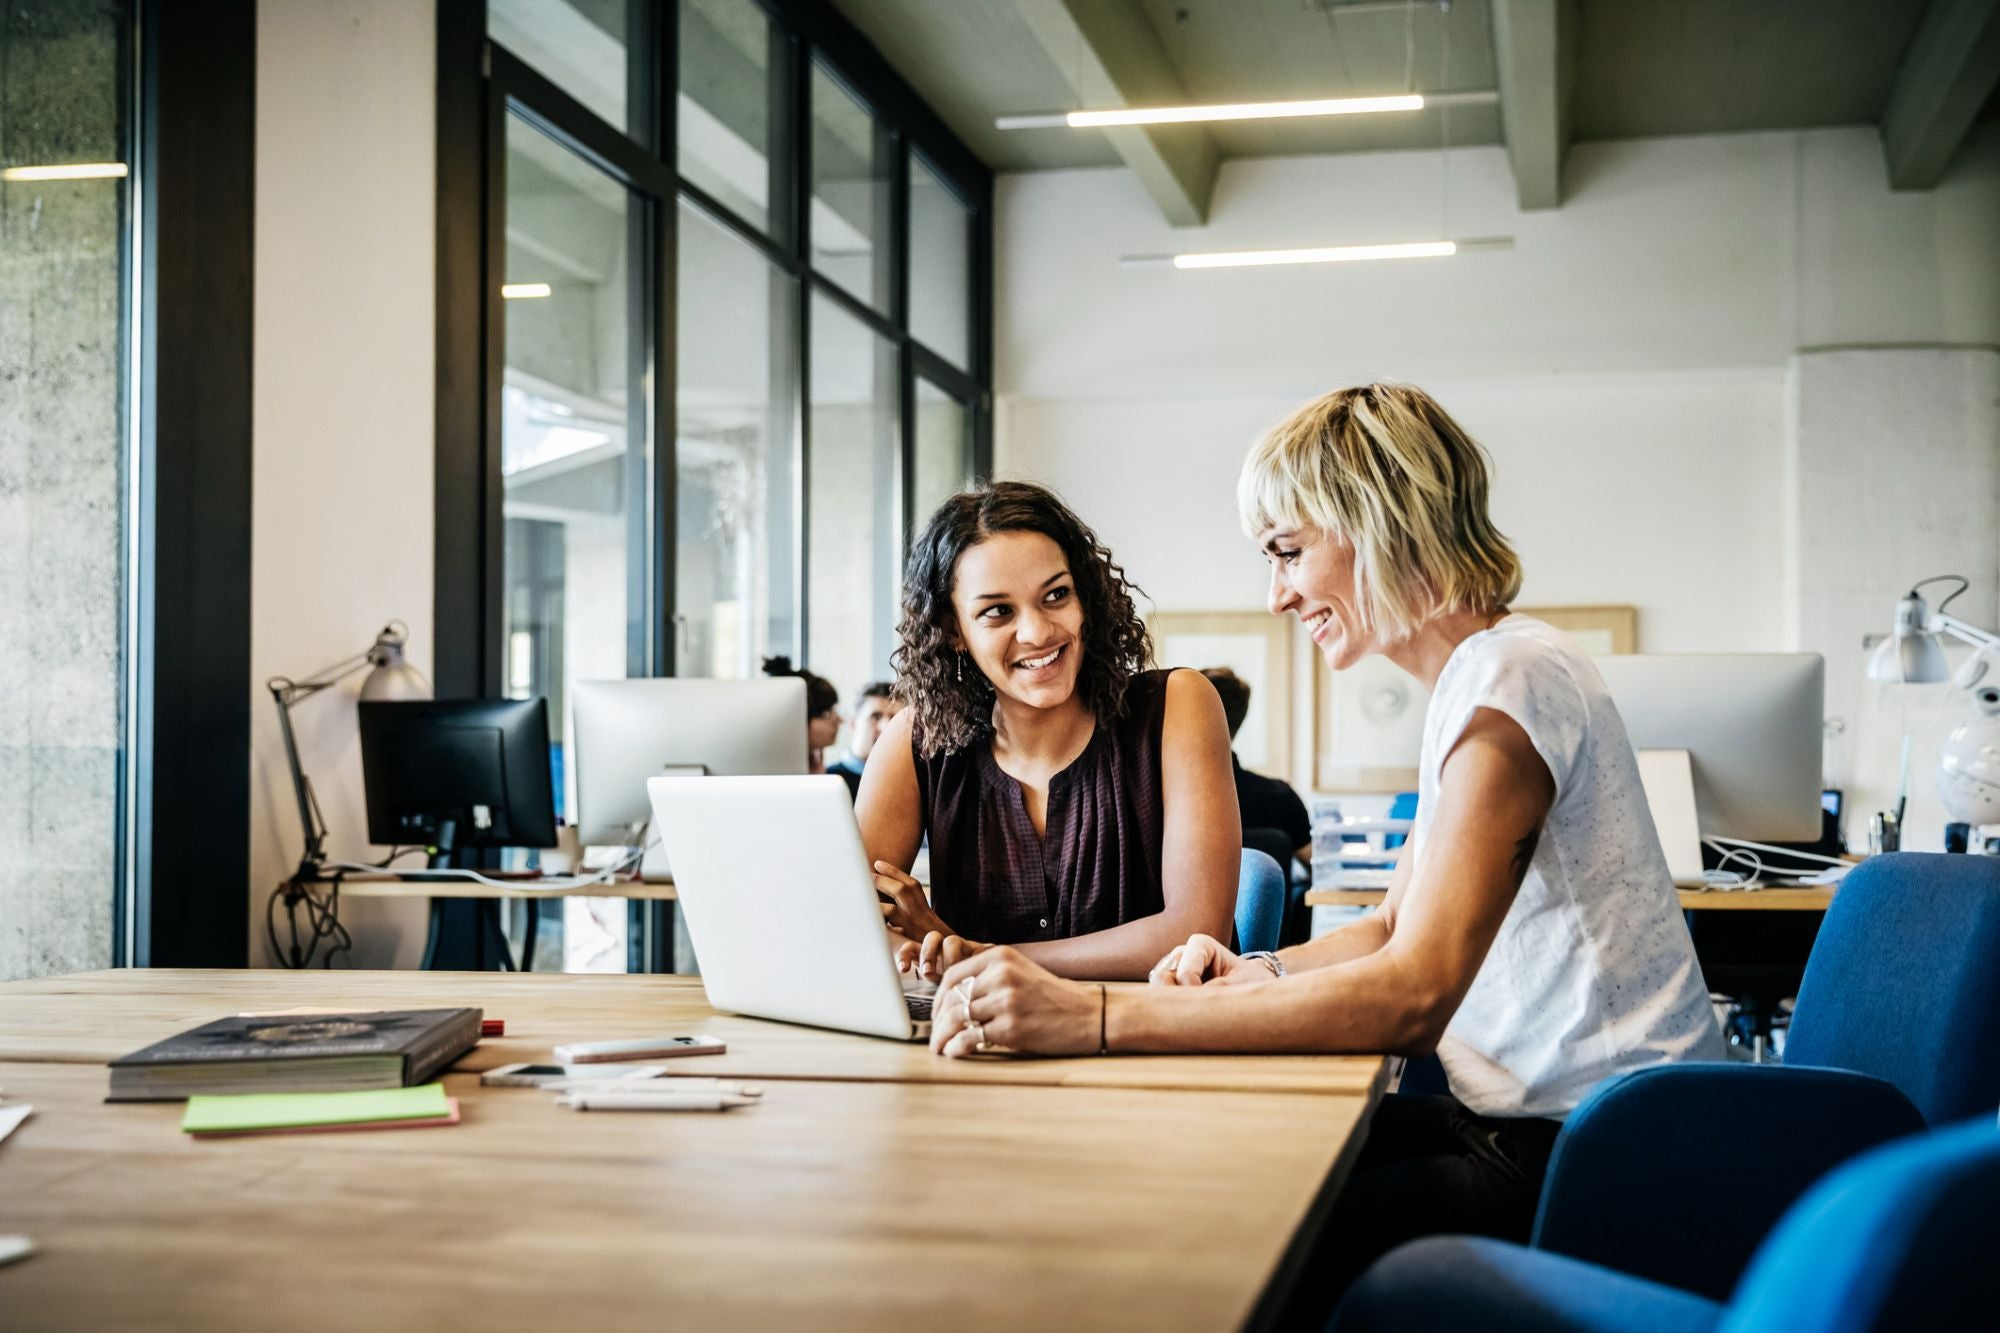 We All Need Work Wives: Here's How Bosses Can Encourage Female Friendship